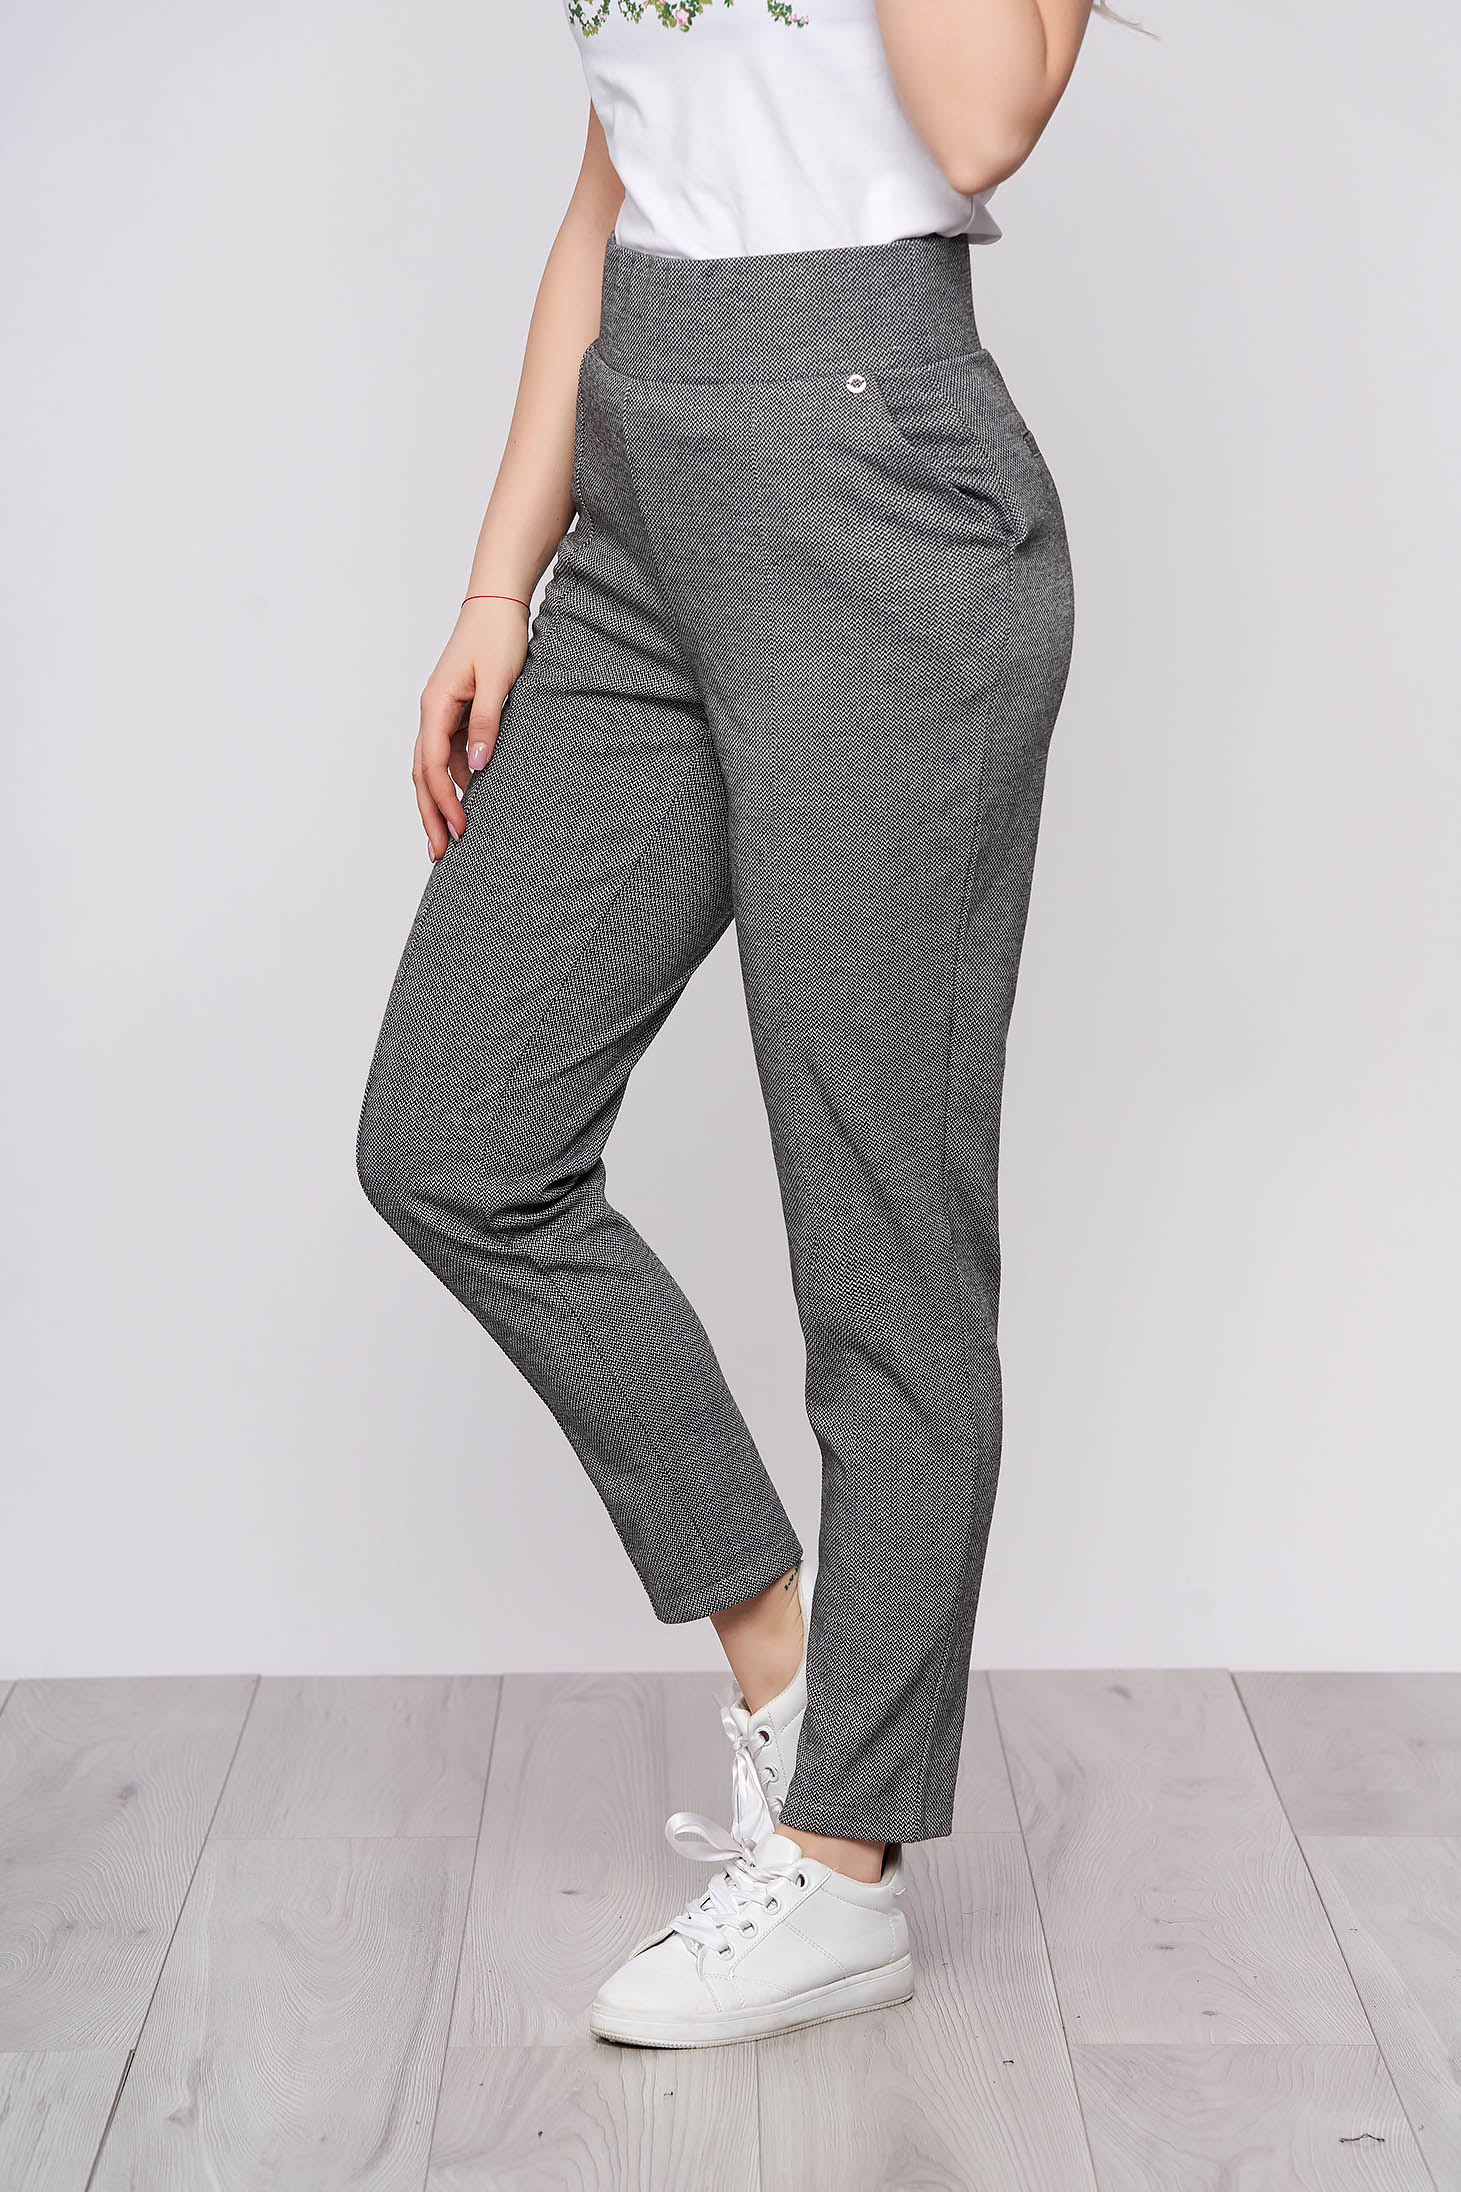 Darkgrey casual high waisted trousers with pockets dogtooth print